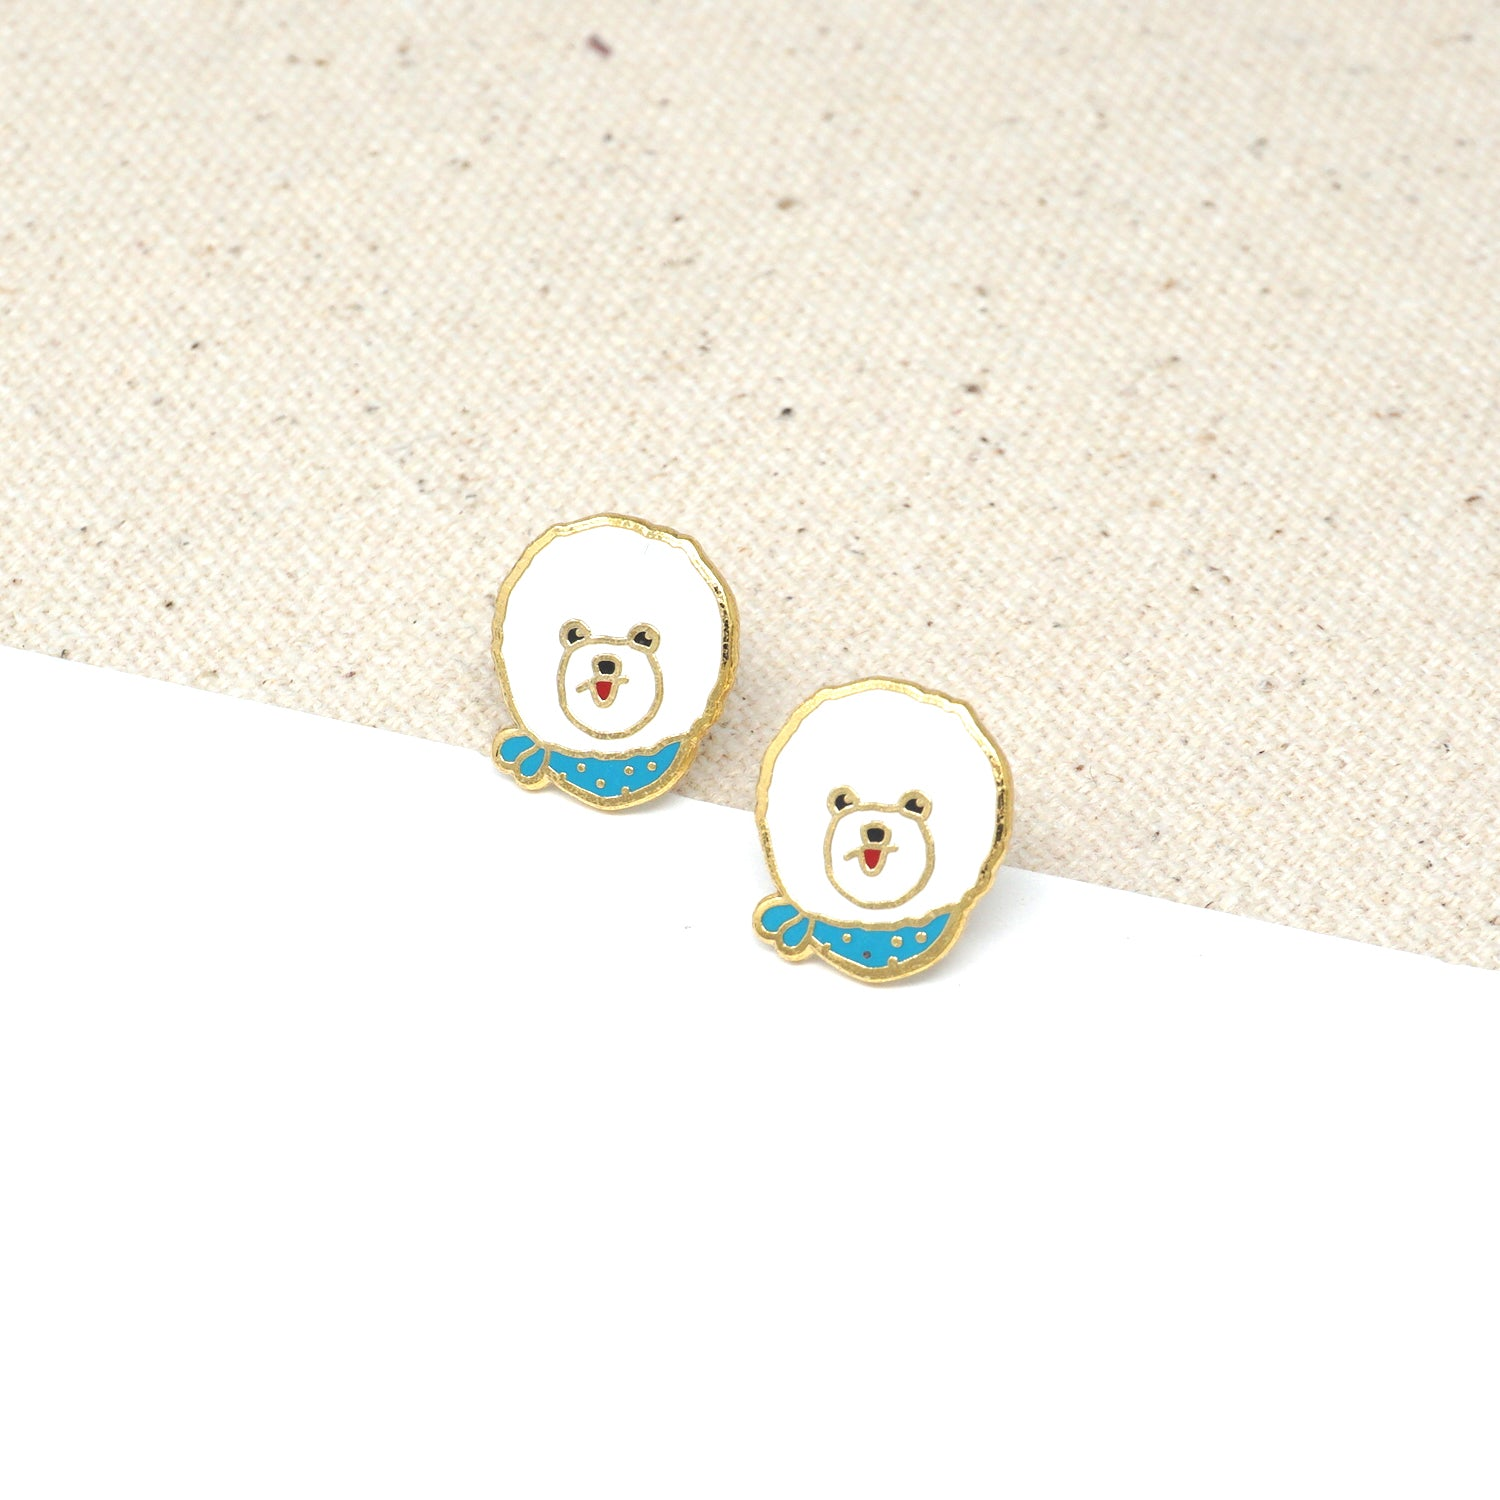 Handcrafted Bichon Frise Enamel Stud Earrings